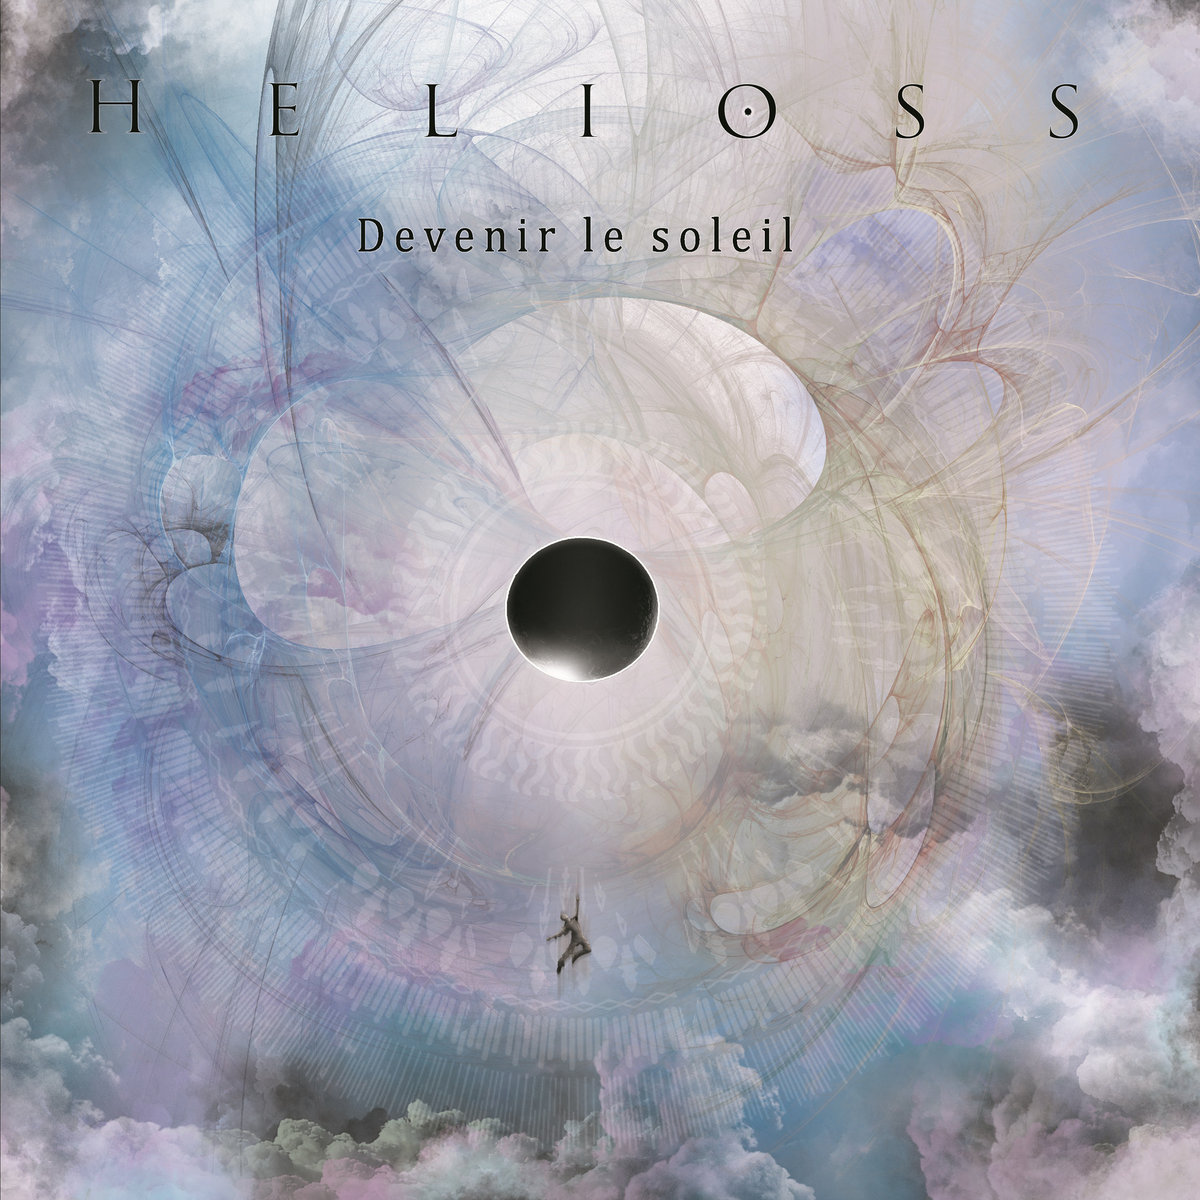 helioss devenir le soleil cover art